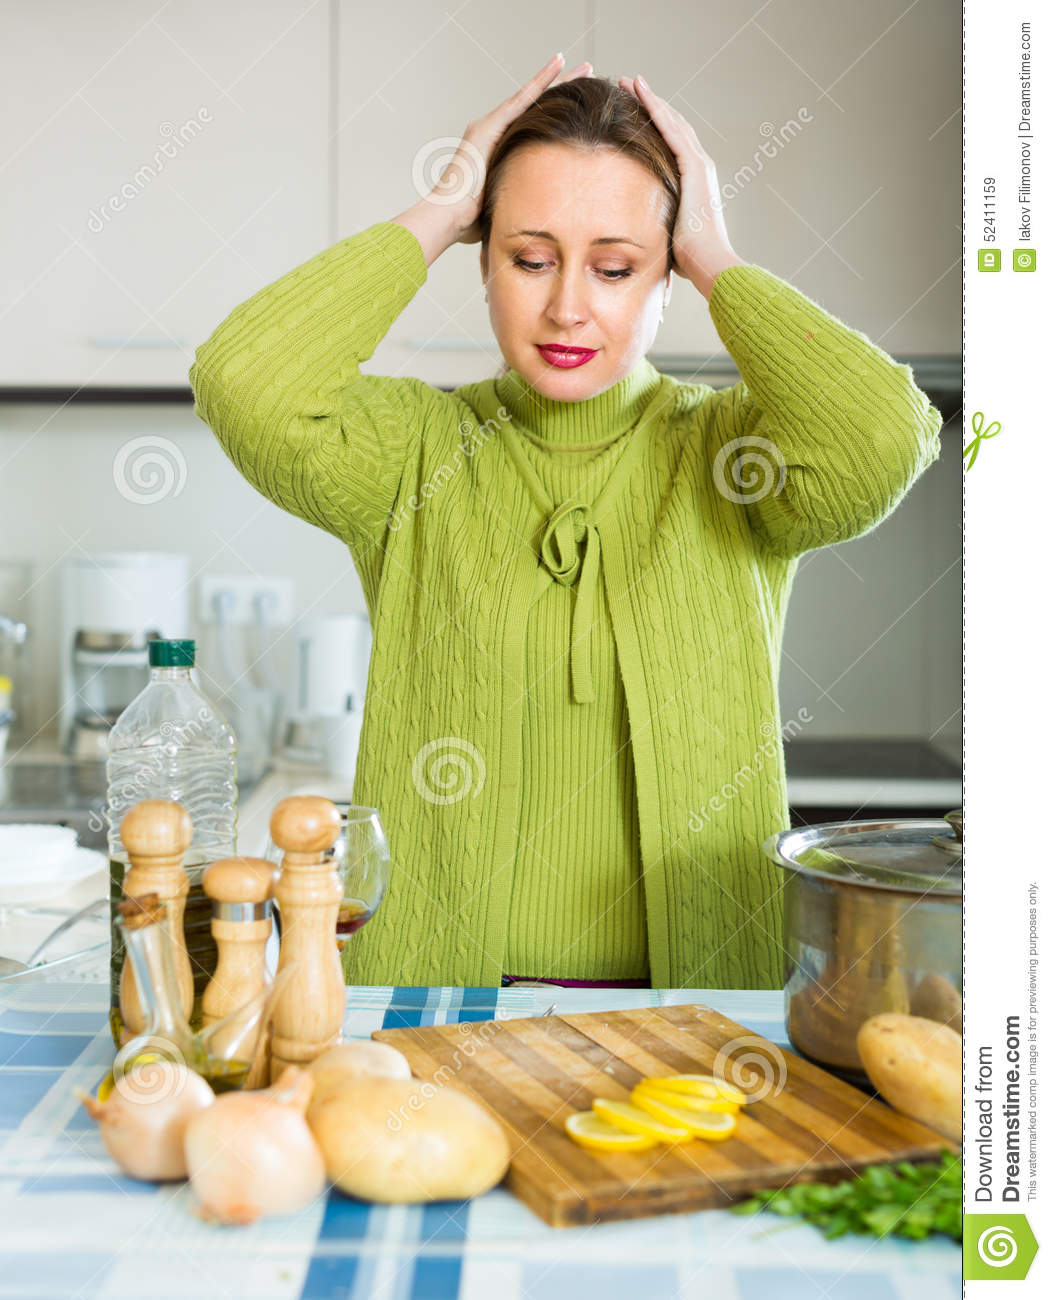 Tired Housewife At Kitchen Stock Photo - Image: 52411159